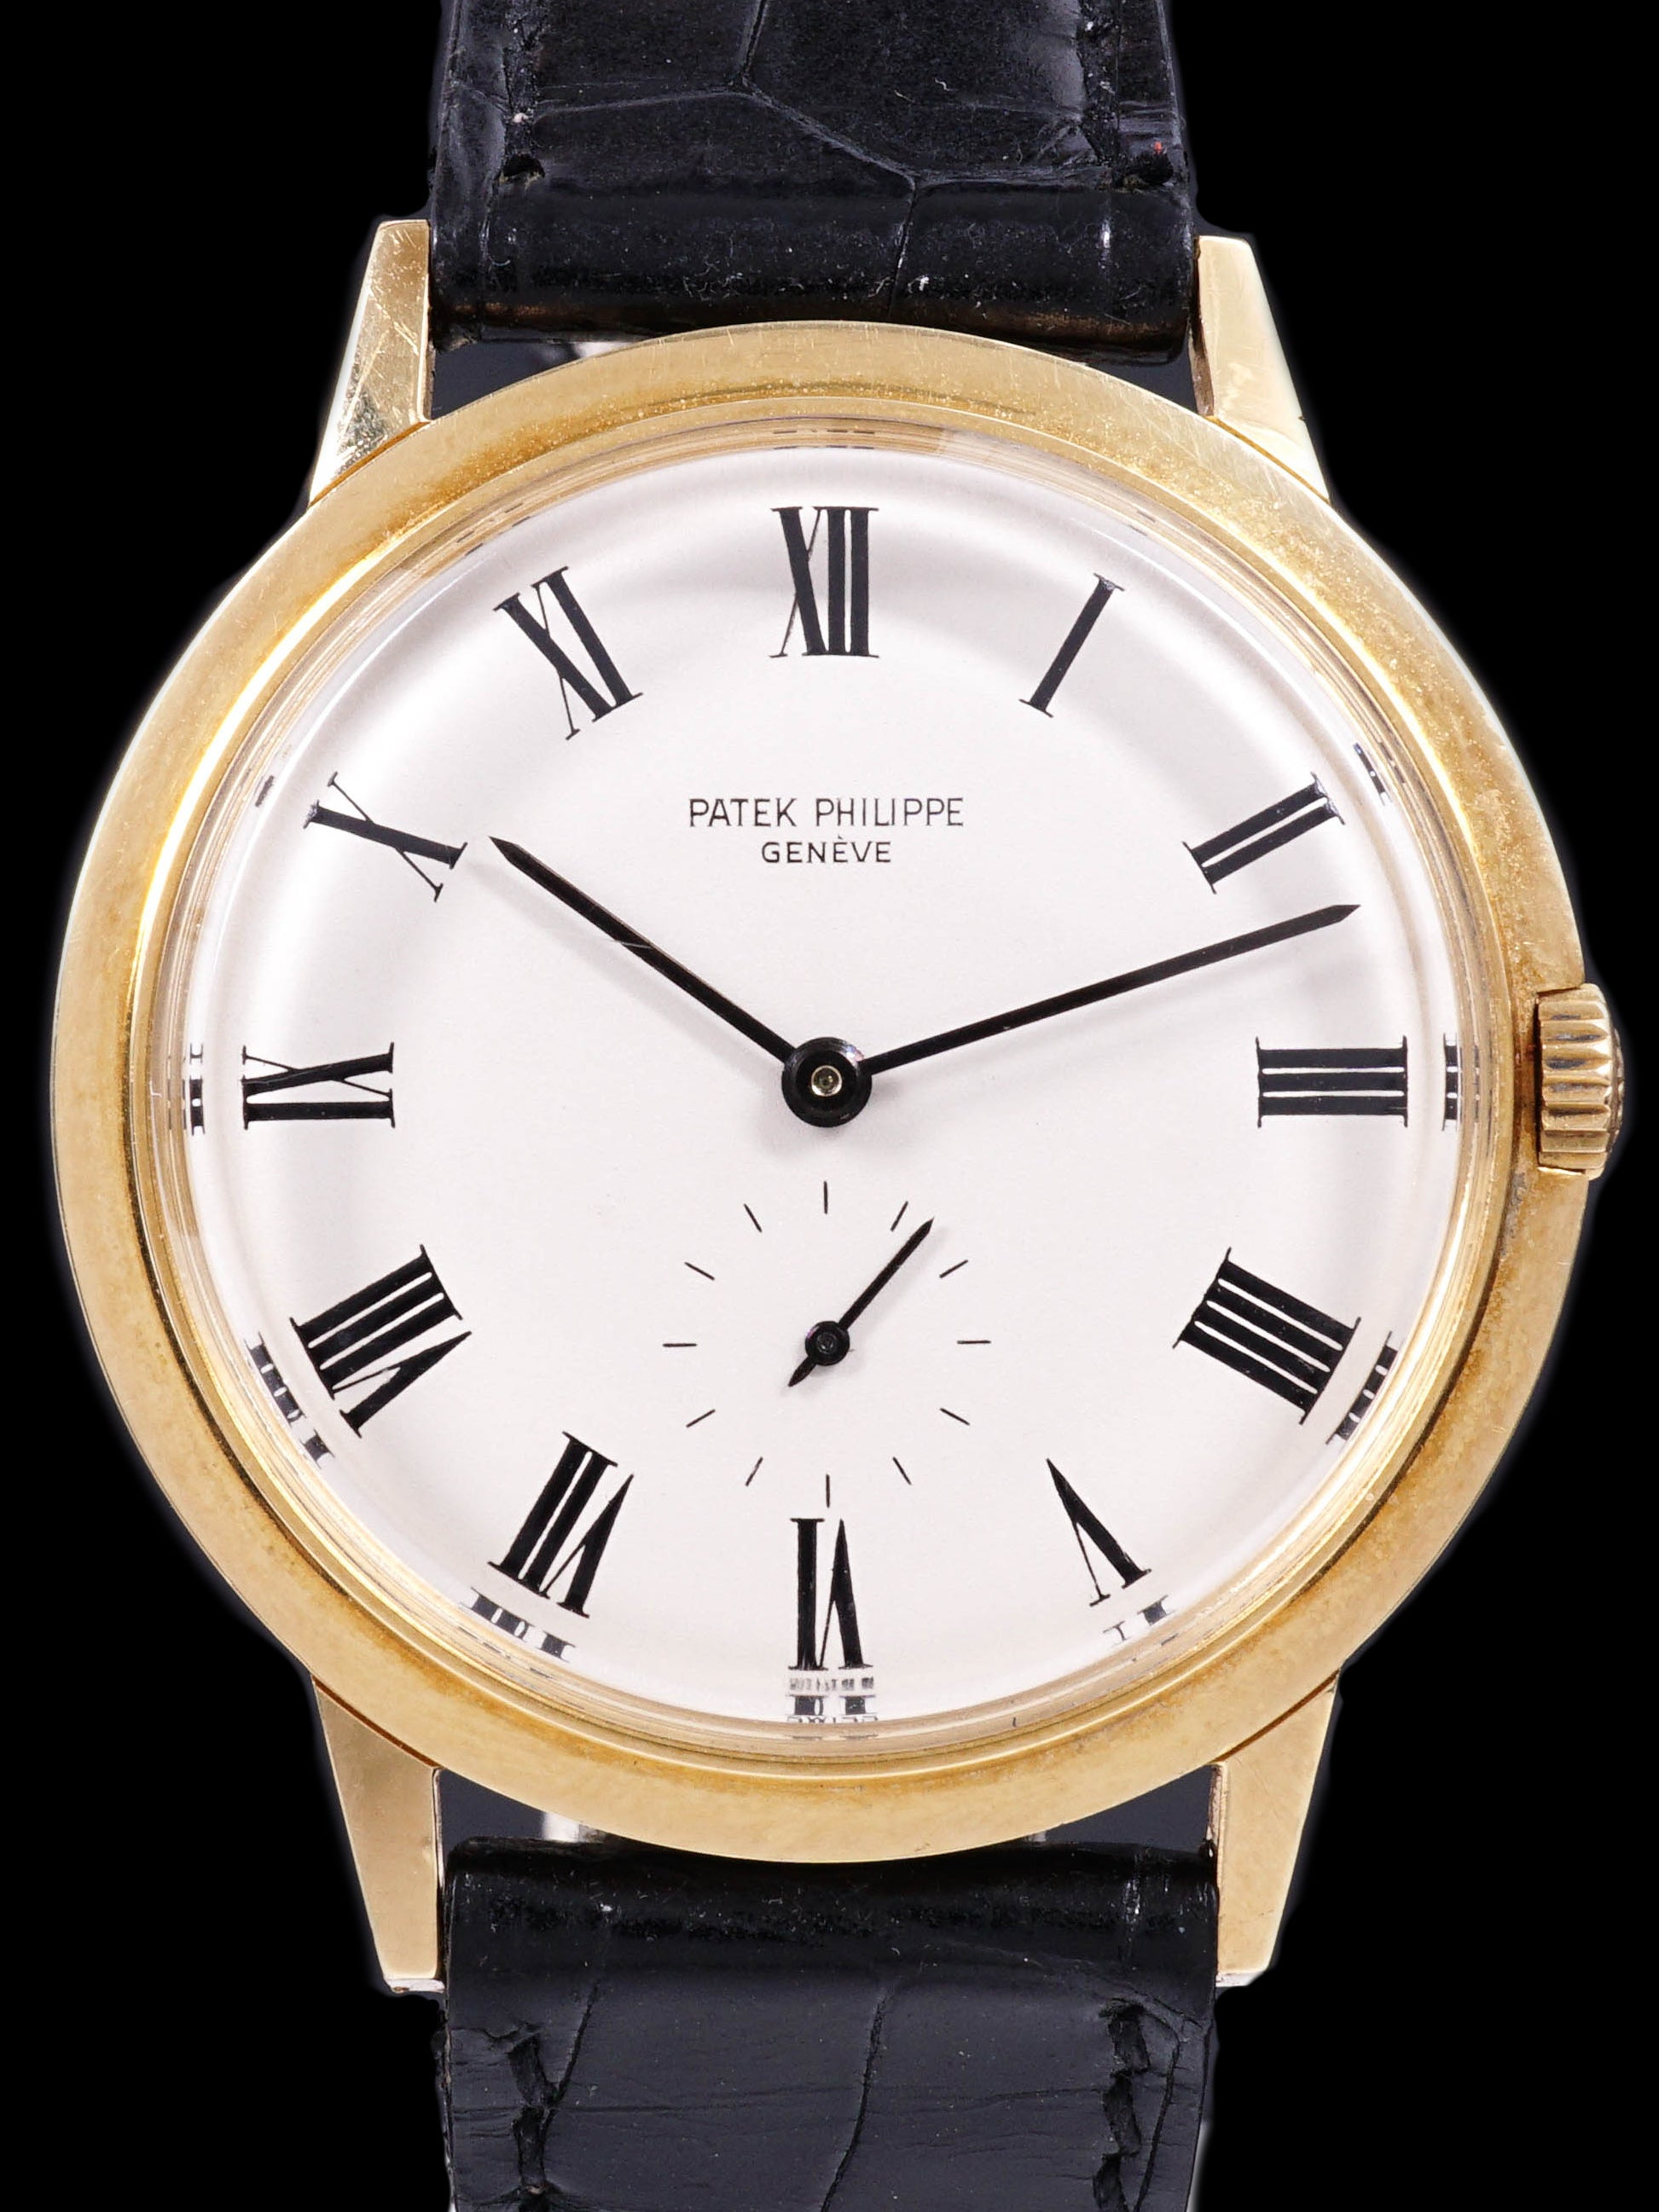 1967 Patek Philippe Ref. 3542 18k Yellow Gold w/ Box & Original Papers